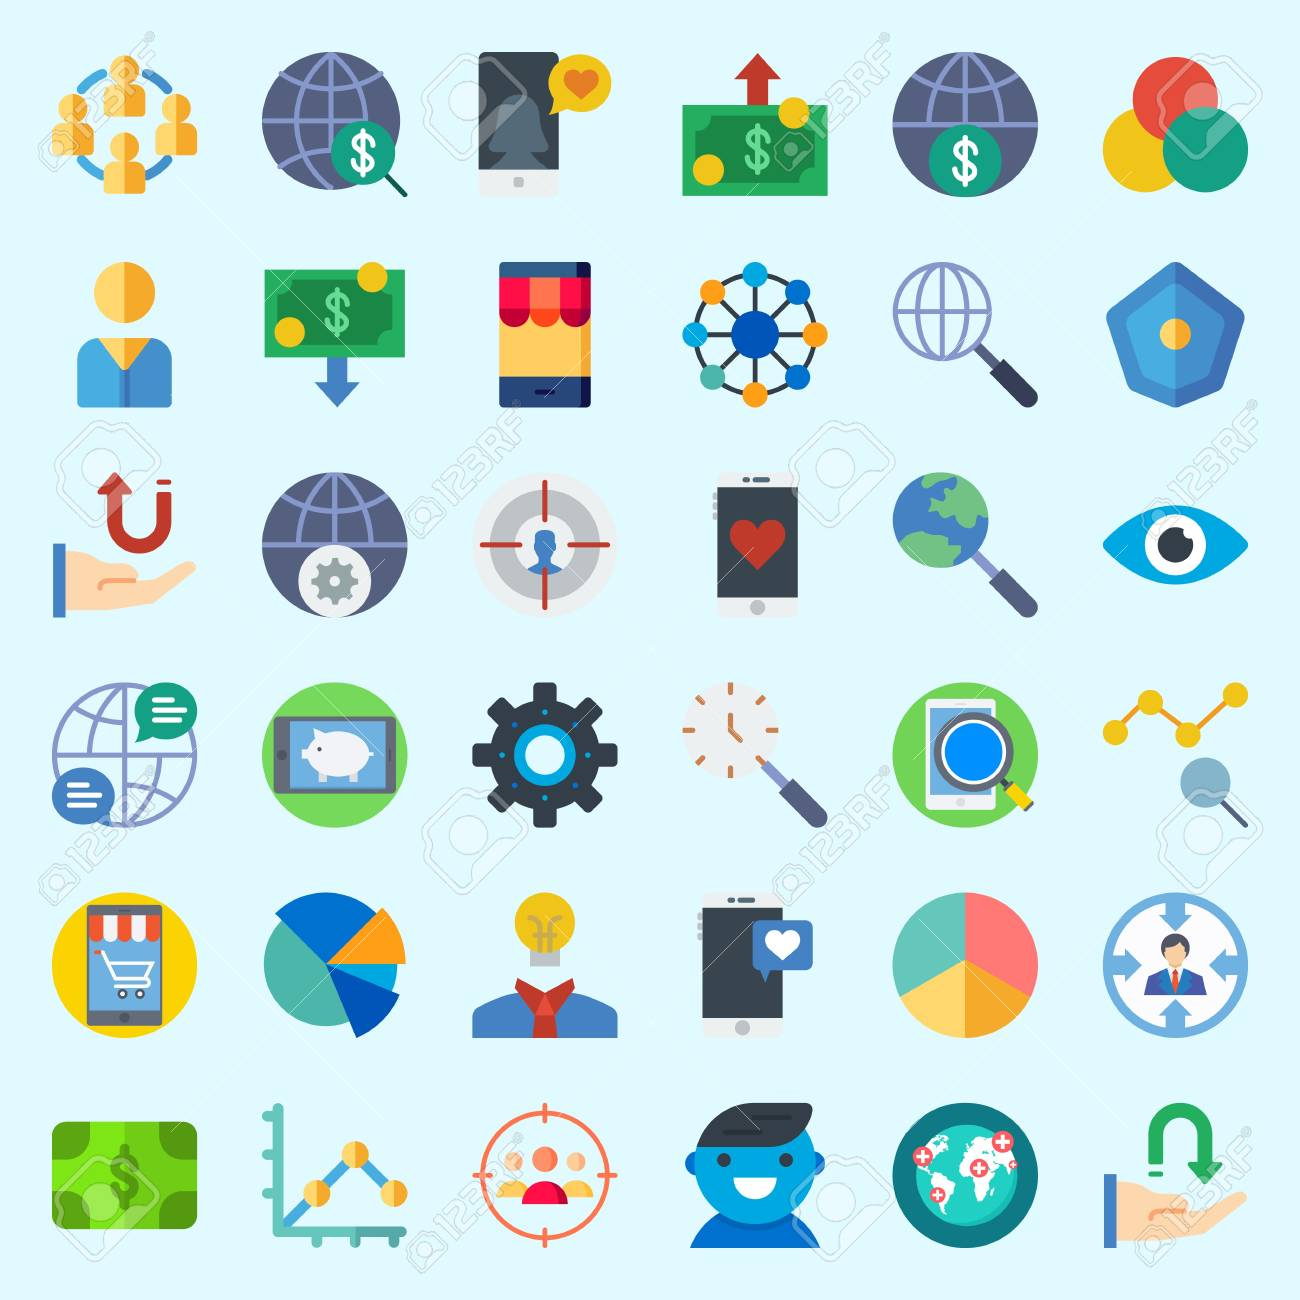 Icons Set About Marketing With Internet Pie Chart Target